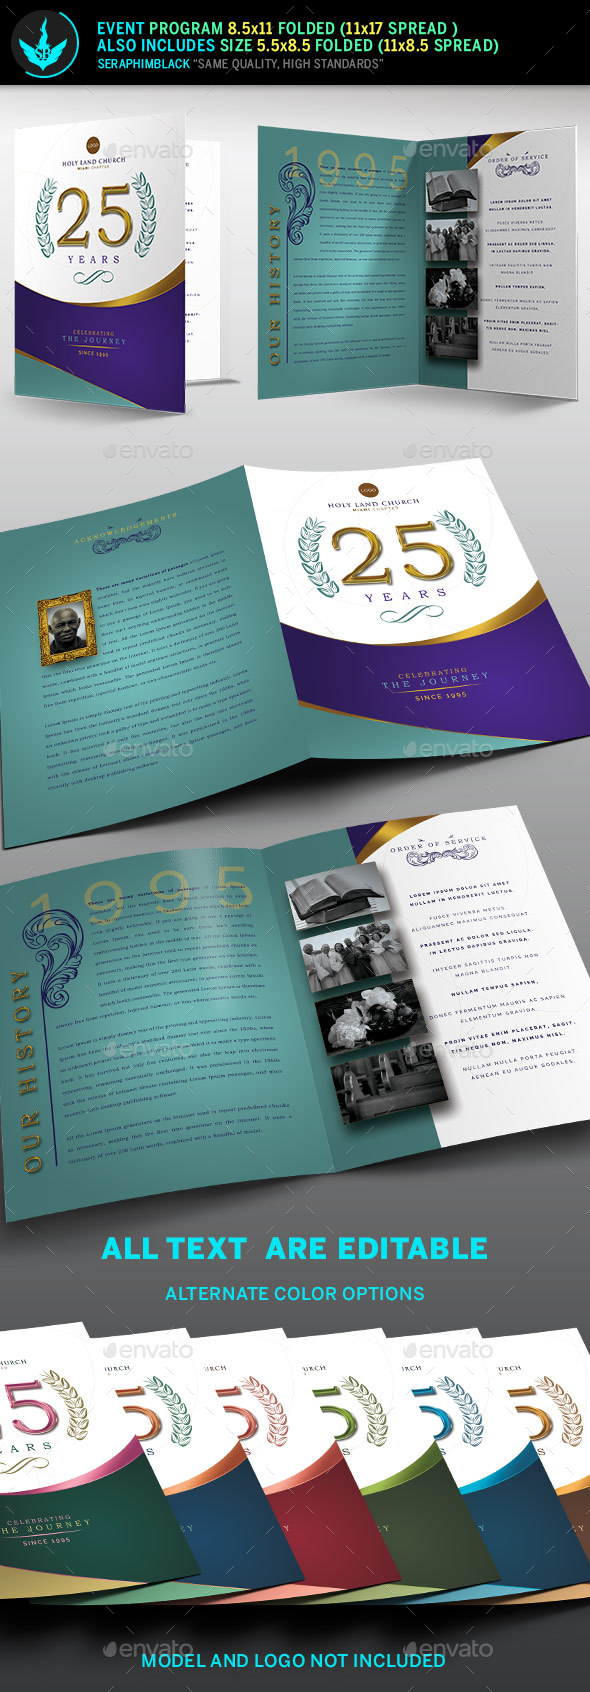 GraphicRiver Regal Gold Lavender plus Teal Church Anniversary Program Template 20743823